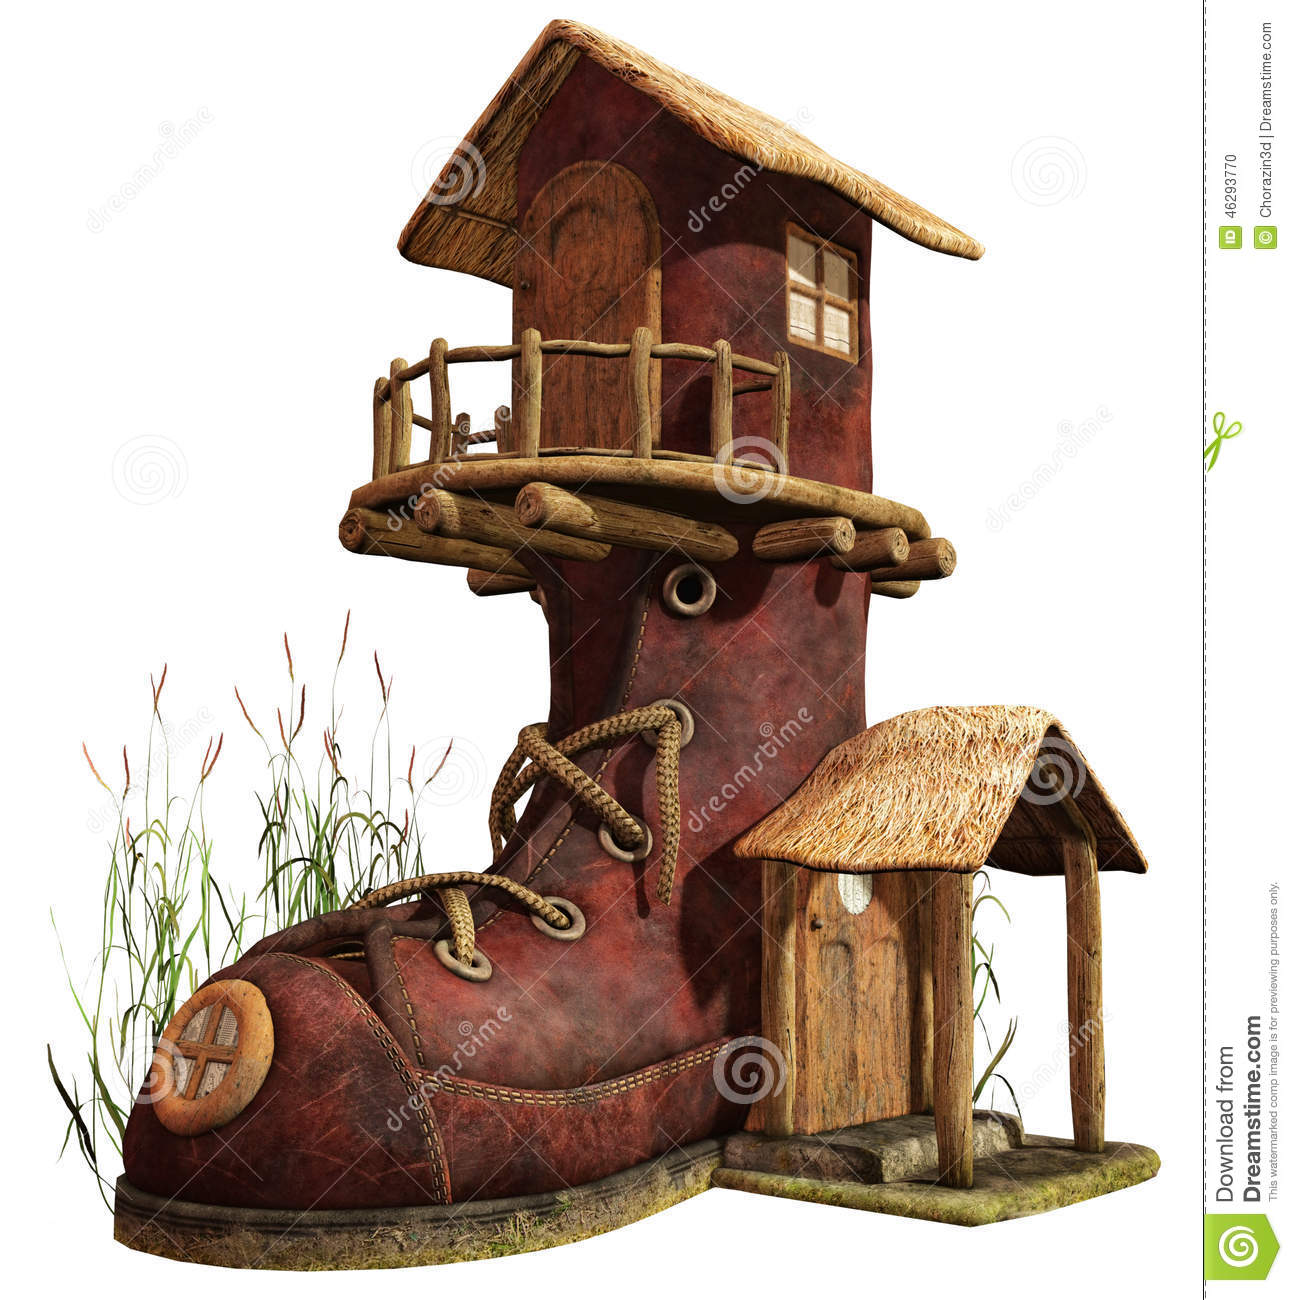 Fairy stock illustration of. Boot clipart boot house banner